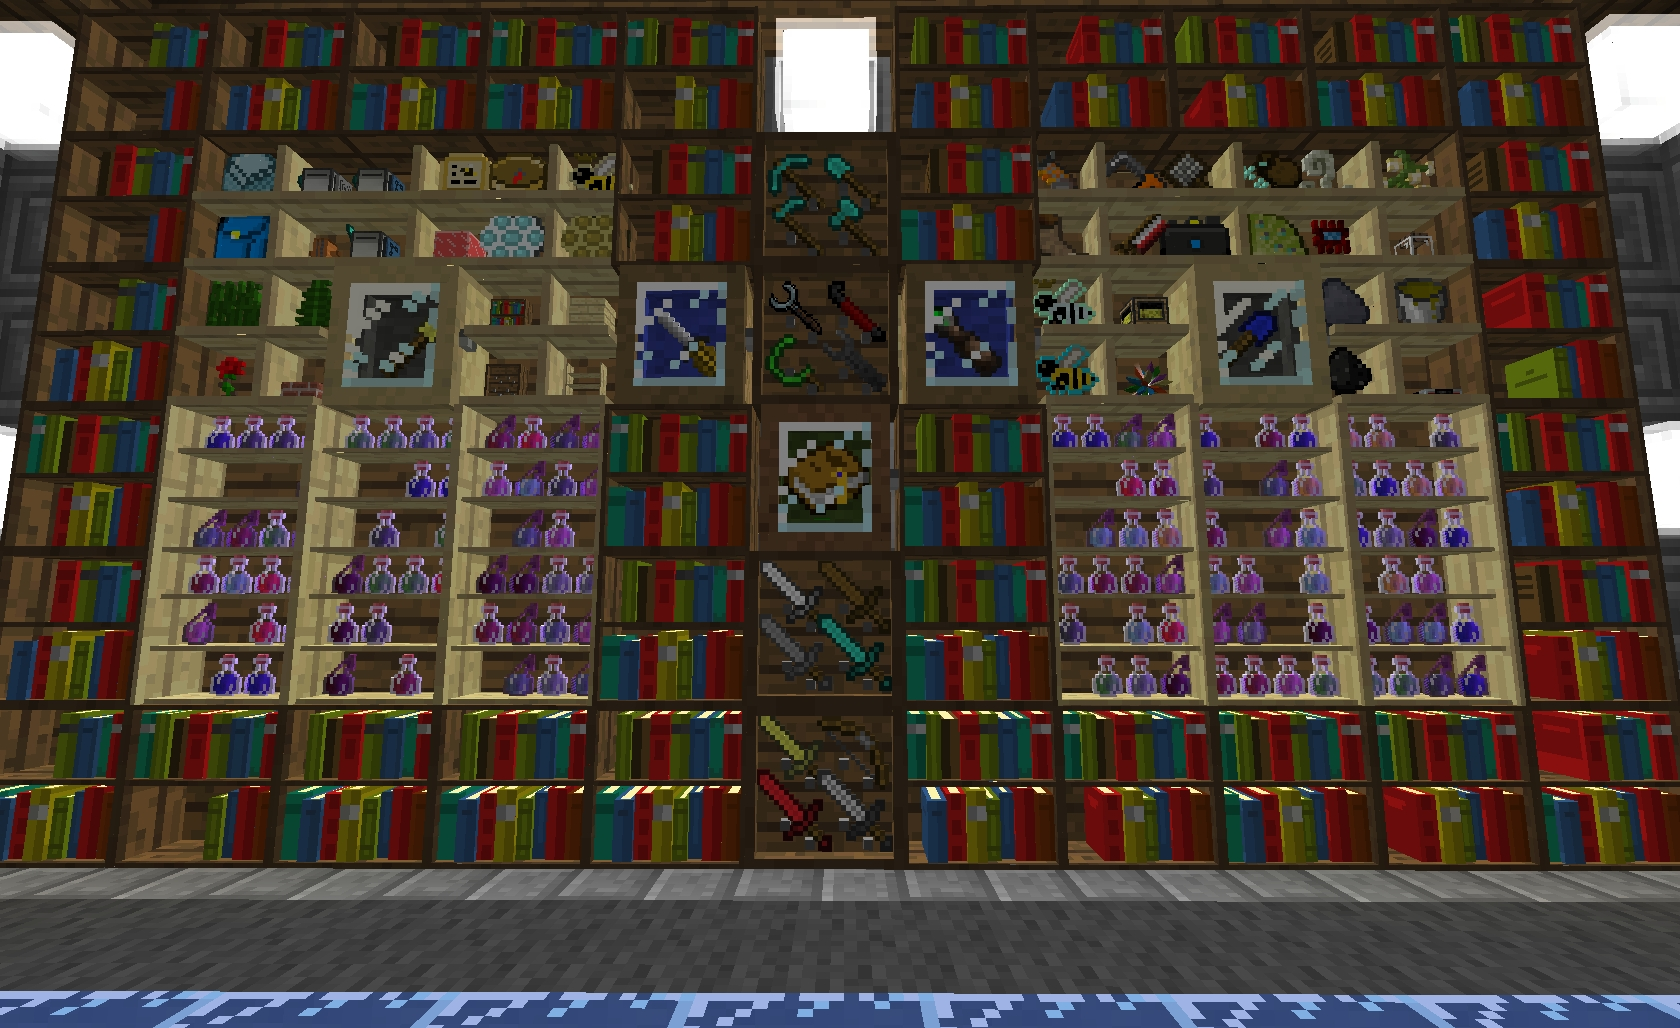 [%bibliocraft [v2.4.3] Bookcases, Armor Stands, Shelves, Printing Within Most Current Minecraft Bookcases|minecraft Bookcases Throughout Current Bibliocraft [v2.4.3] Bookcases, Armor Stands, Shelves, Printing|recent Minecraft Bookcases Inside Bibliocraft [v2.4.3] Bookcases, Armor Stands, Shelves, Printing|favorite Bibliocraft [v2. (View 10 of 15)